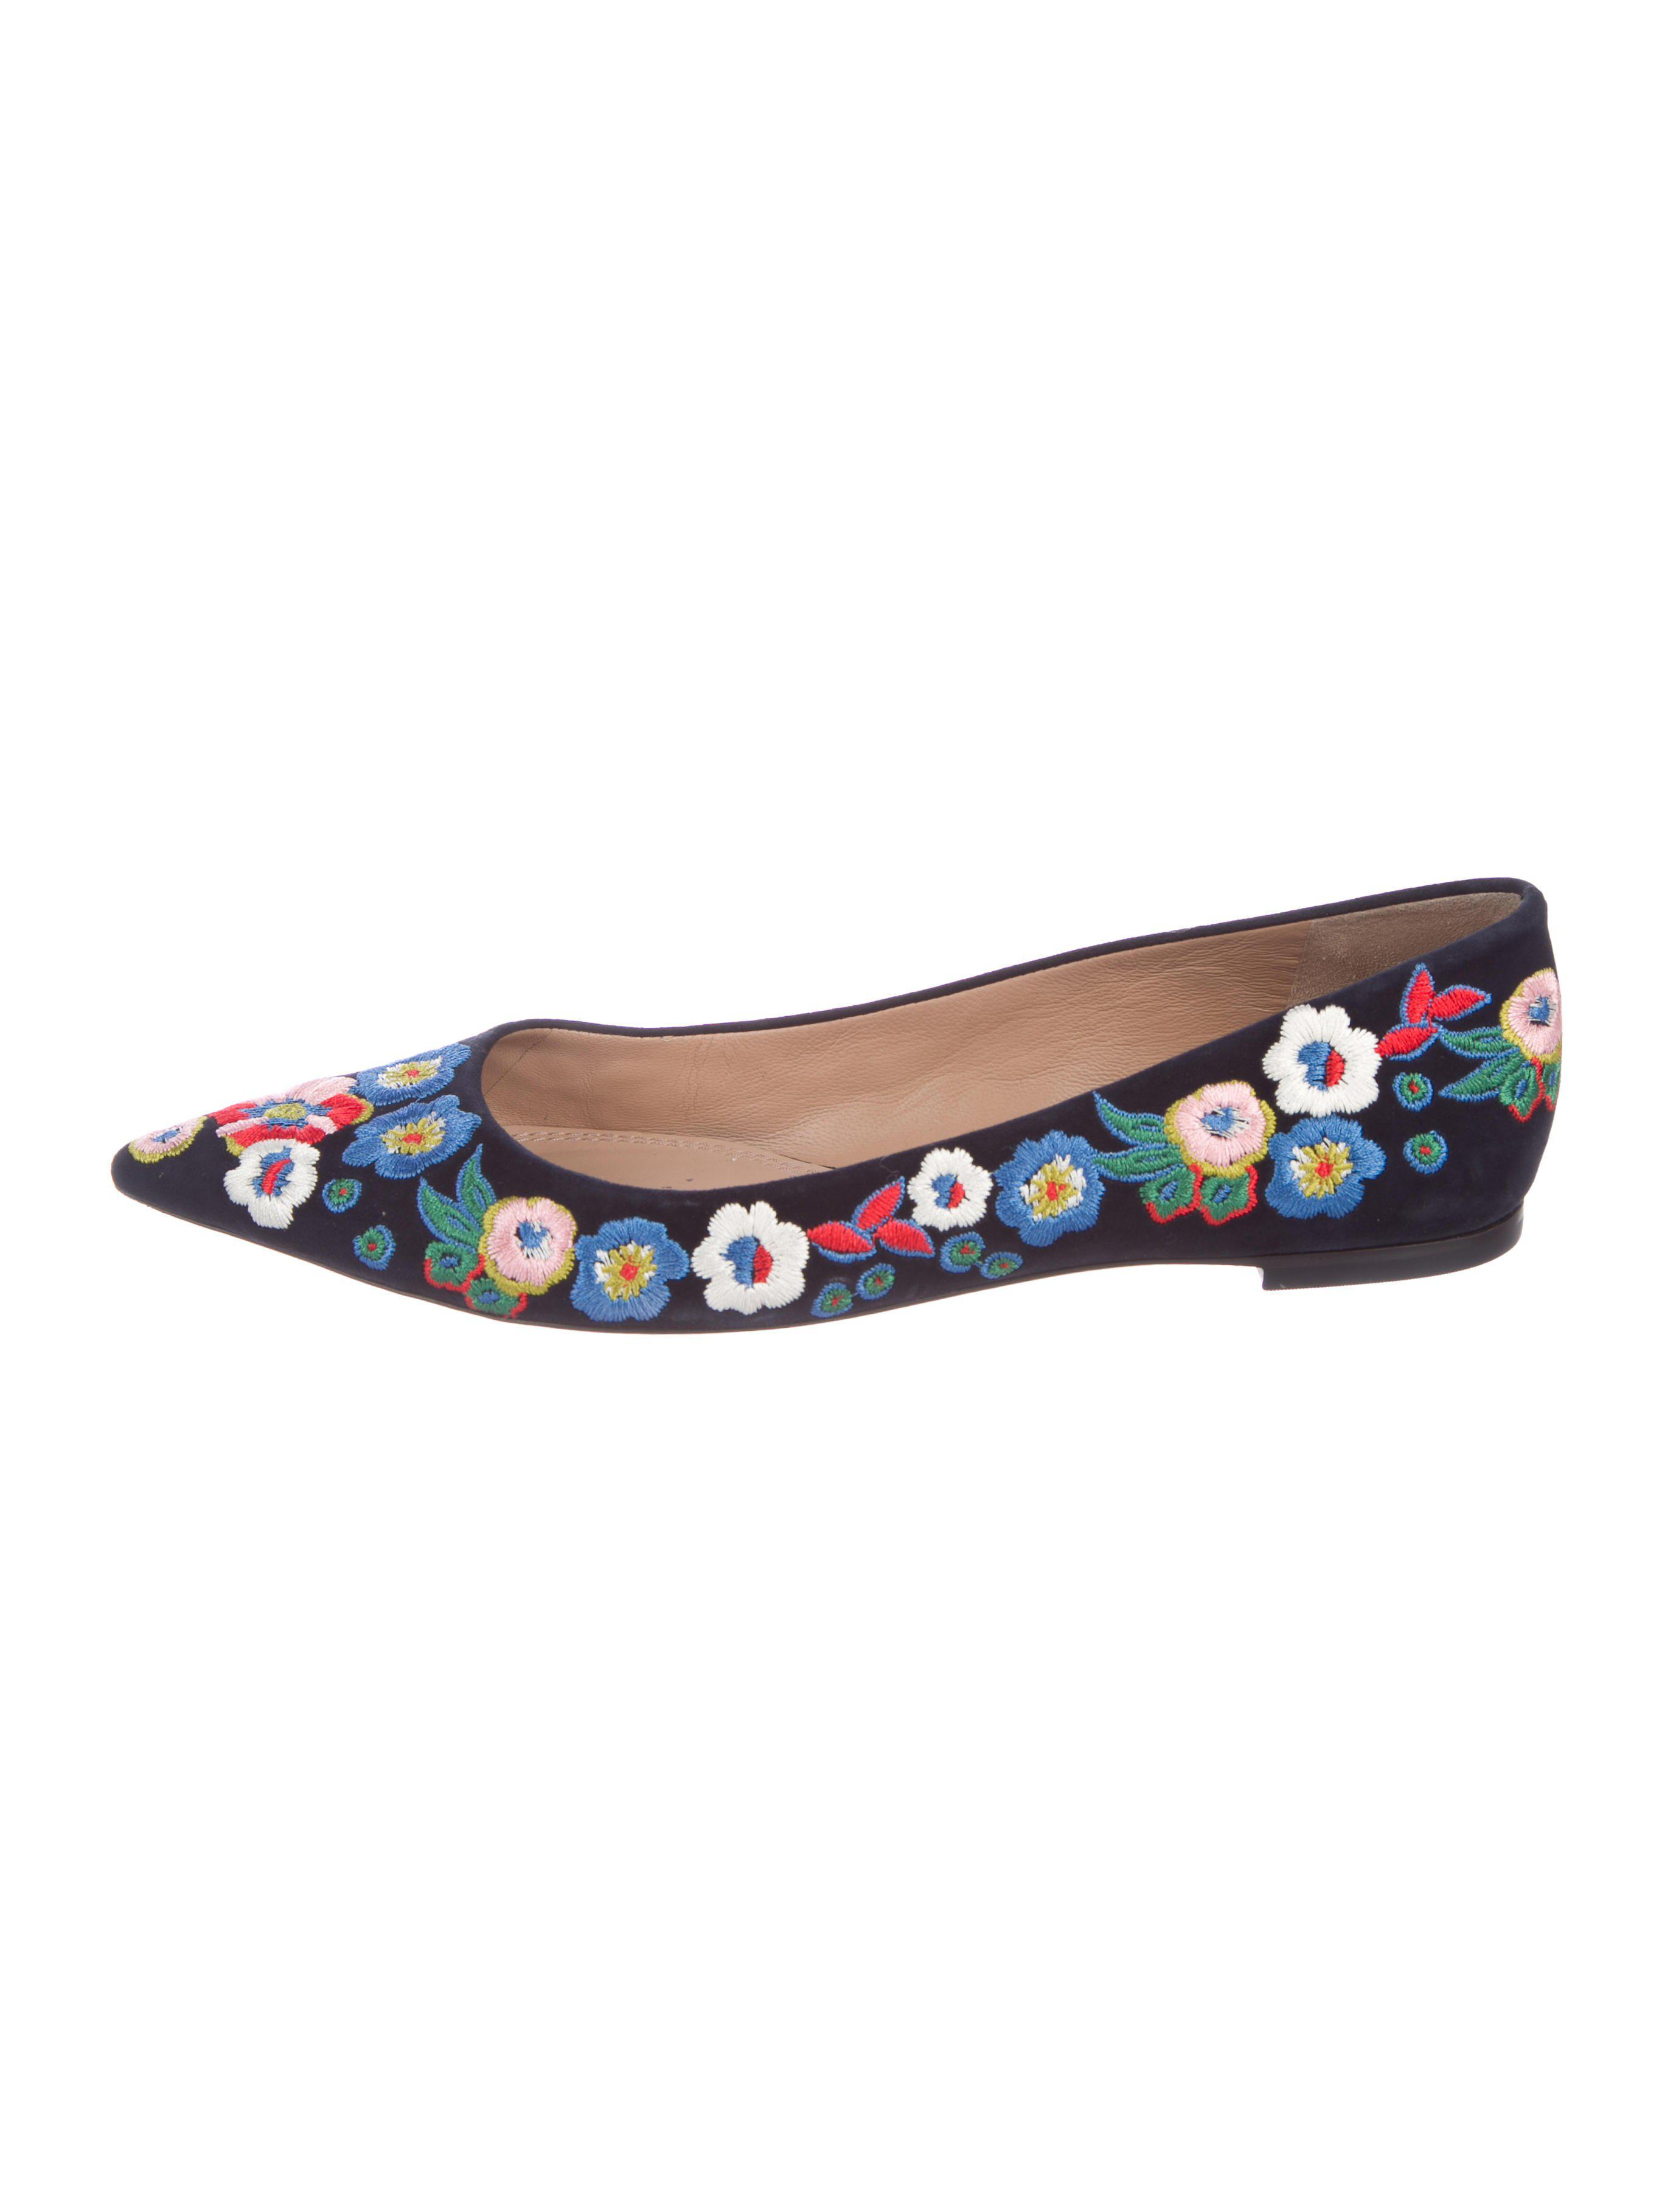 3cb040f3a6d341 Lyst - Tory Burch Rosemont Embroidered Flats in Blue